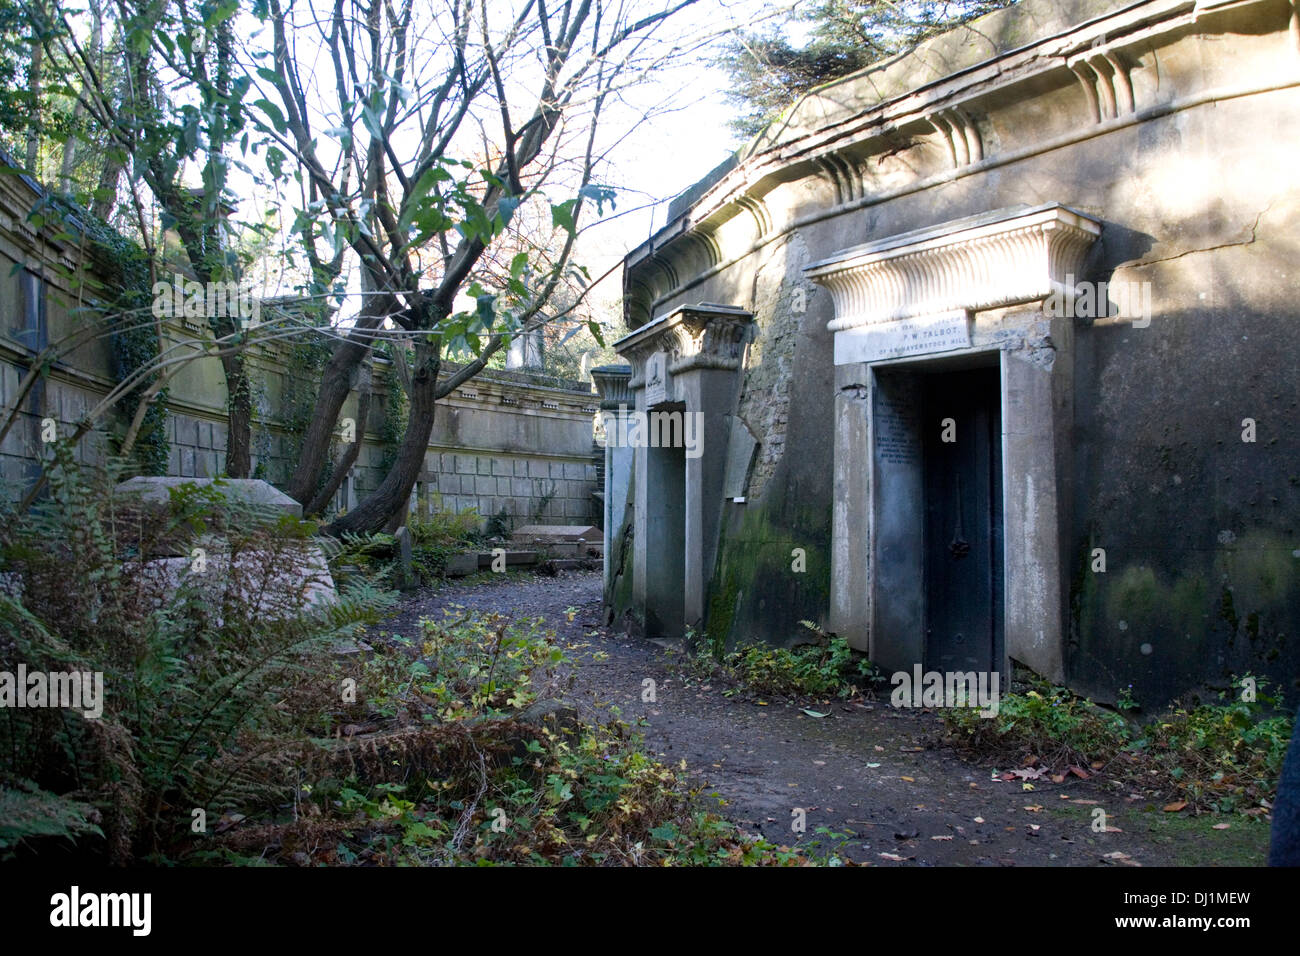 Catacombs at Highgate cemetery - Stock Image